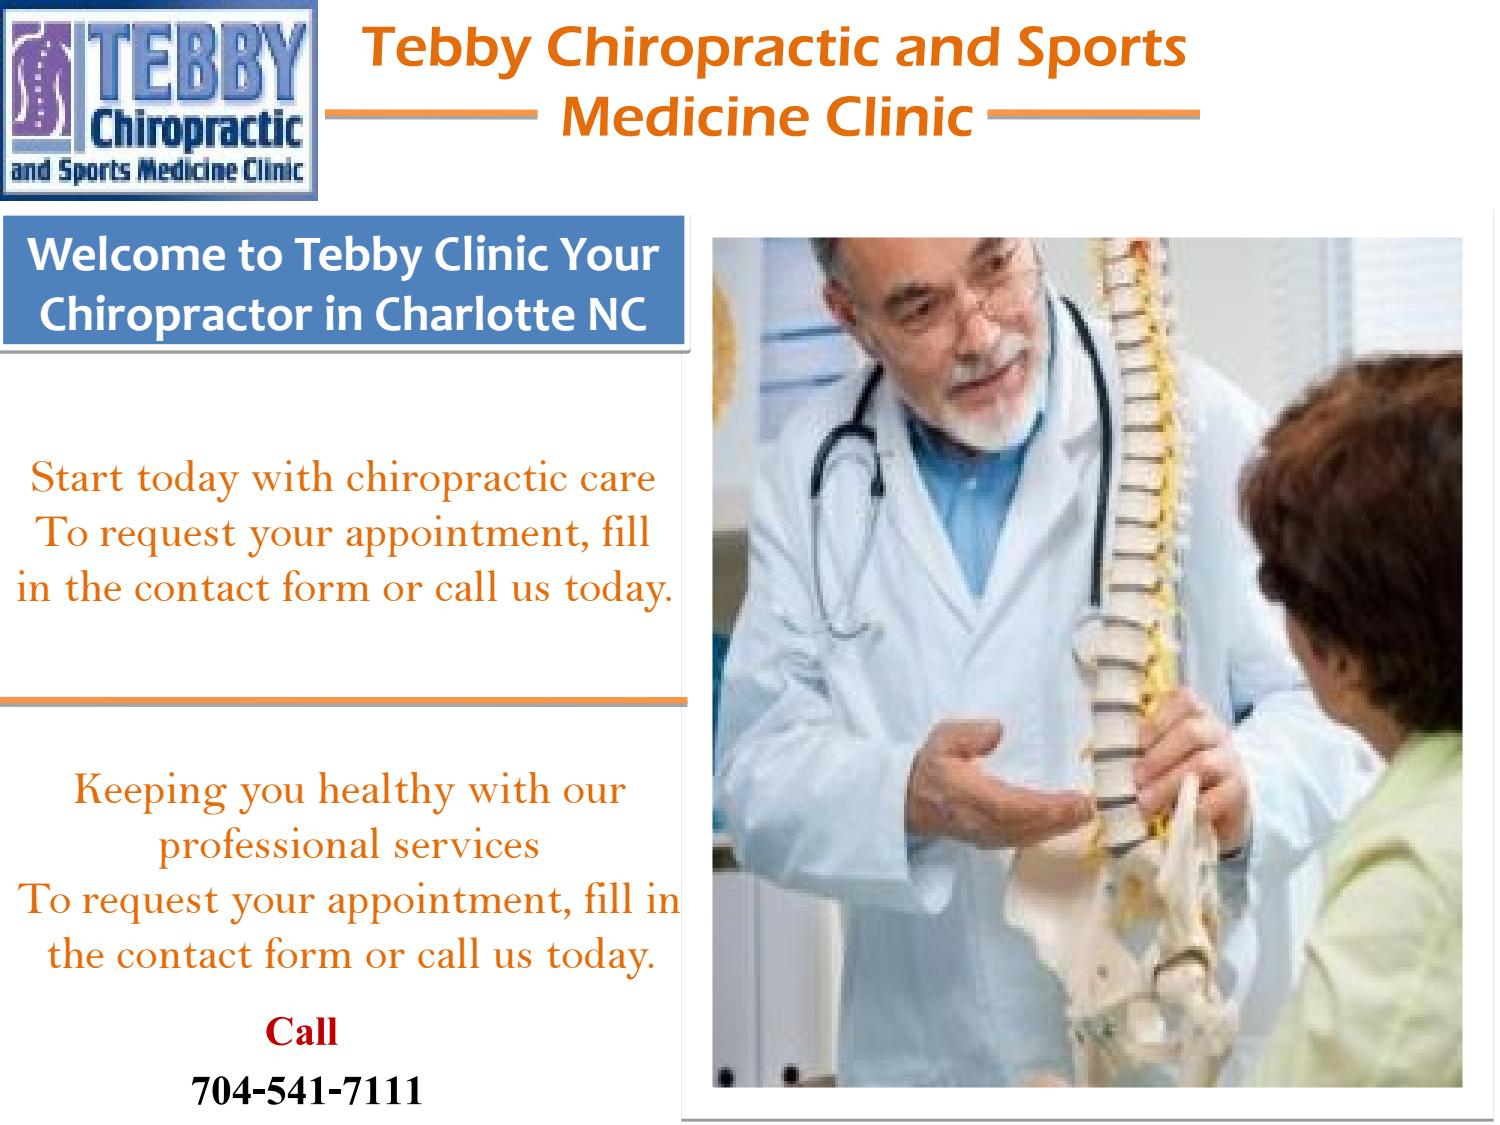 chiropractic treatment specialist chiropractor in charlotte nc by